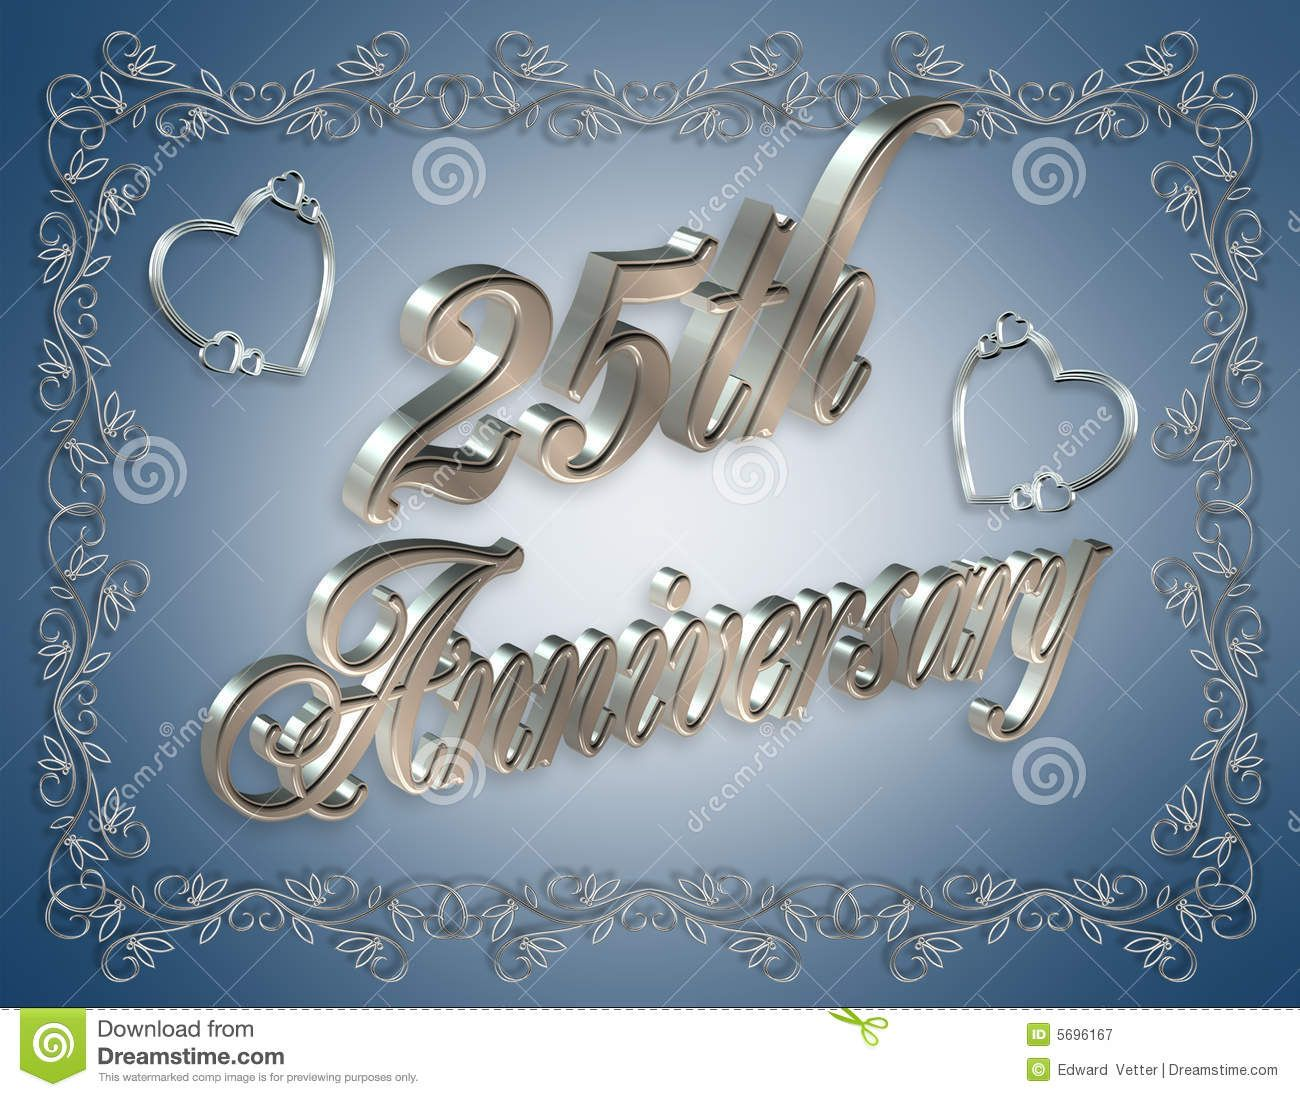 25th wedding anniversary cards free download - Google ...